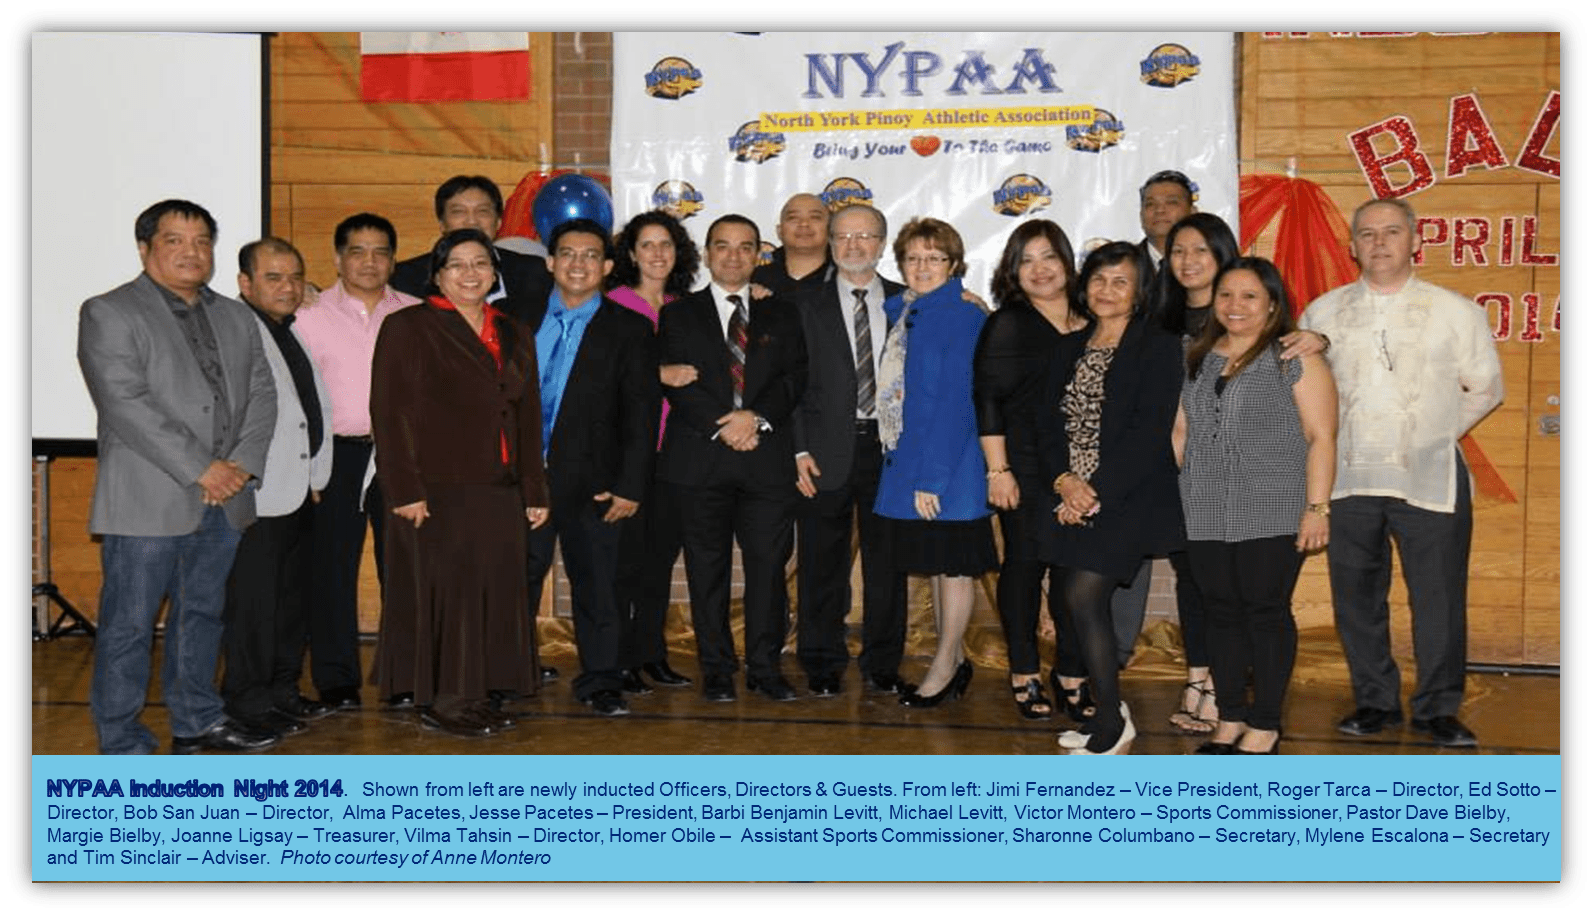 NYPAA-2014 Induction